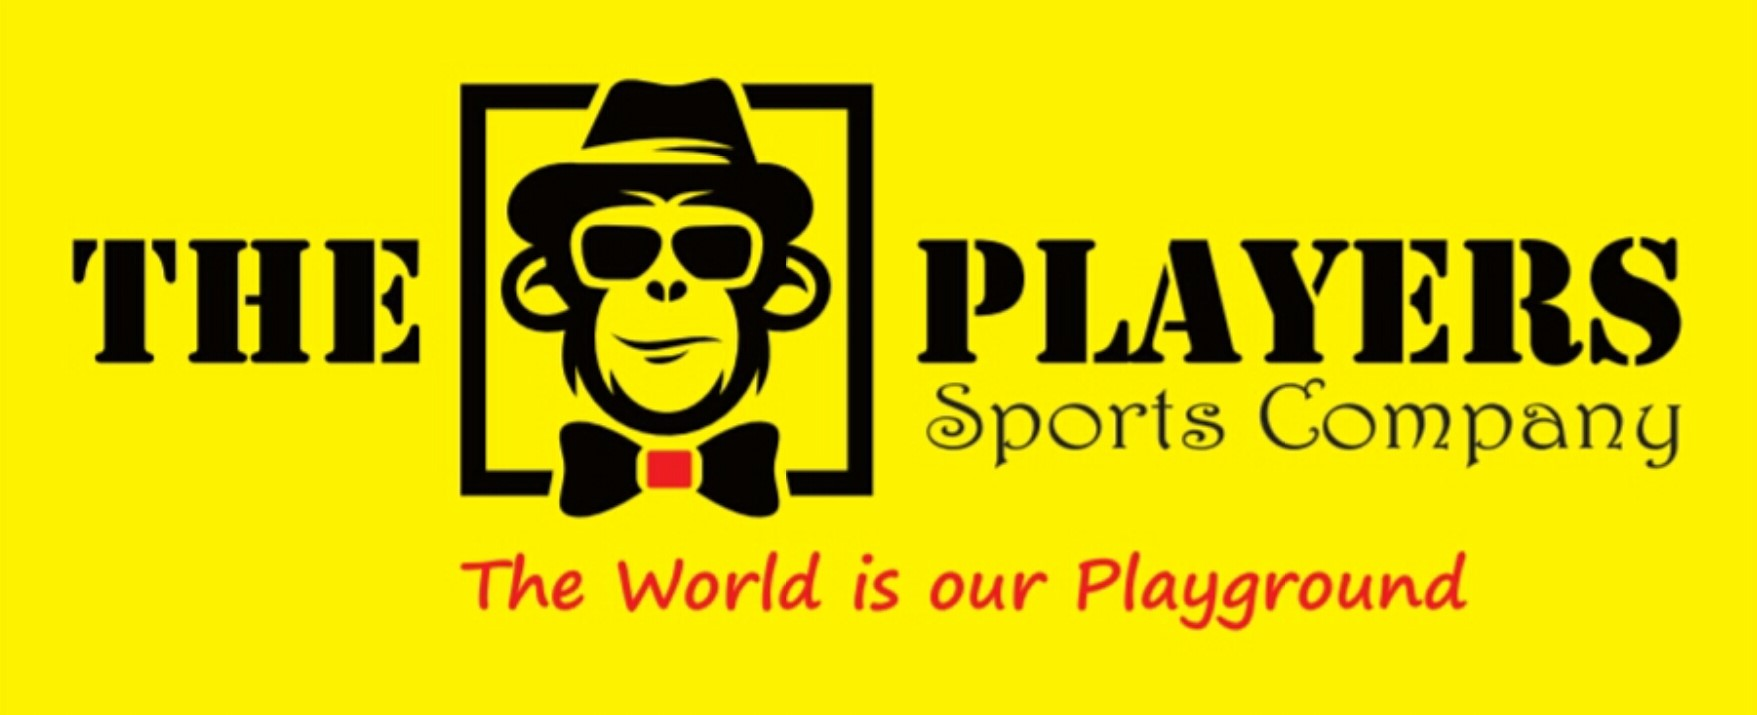 GisterPages-Customer-theplayerssports